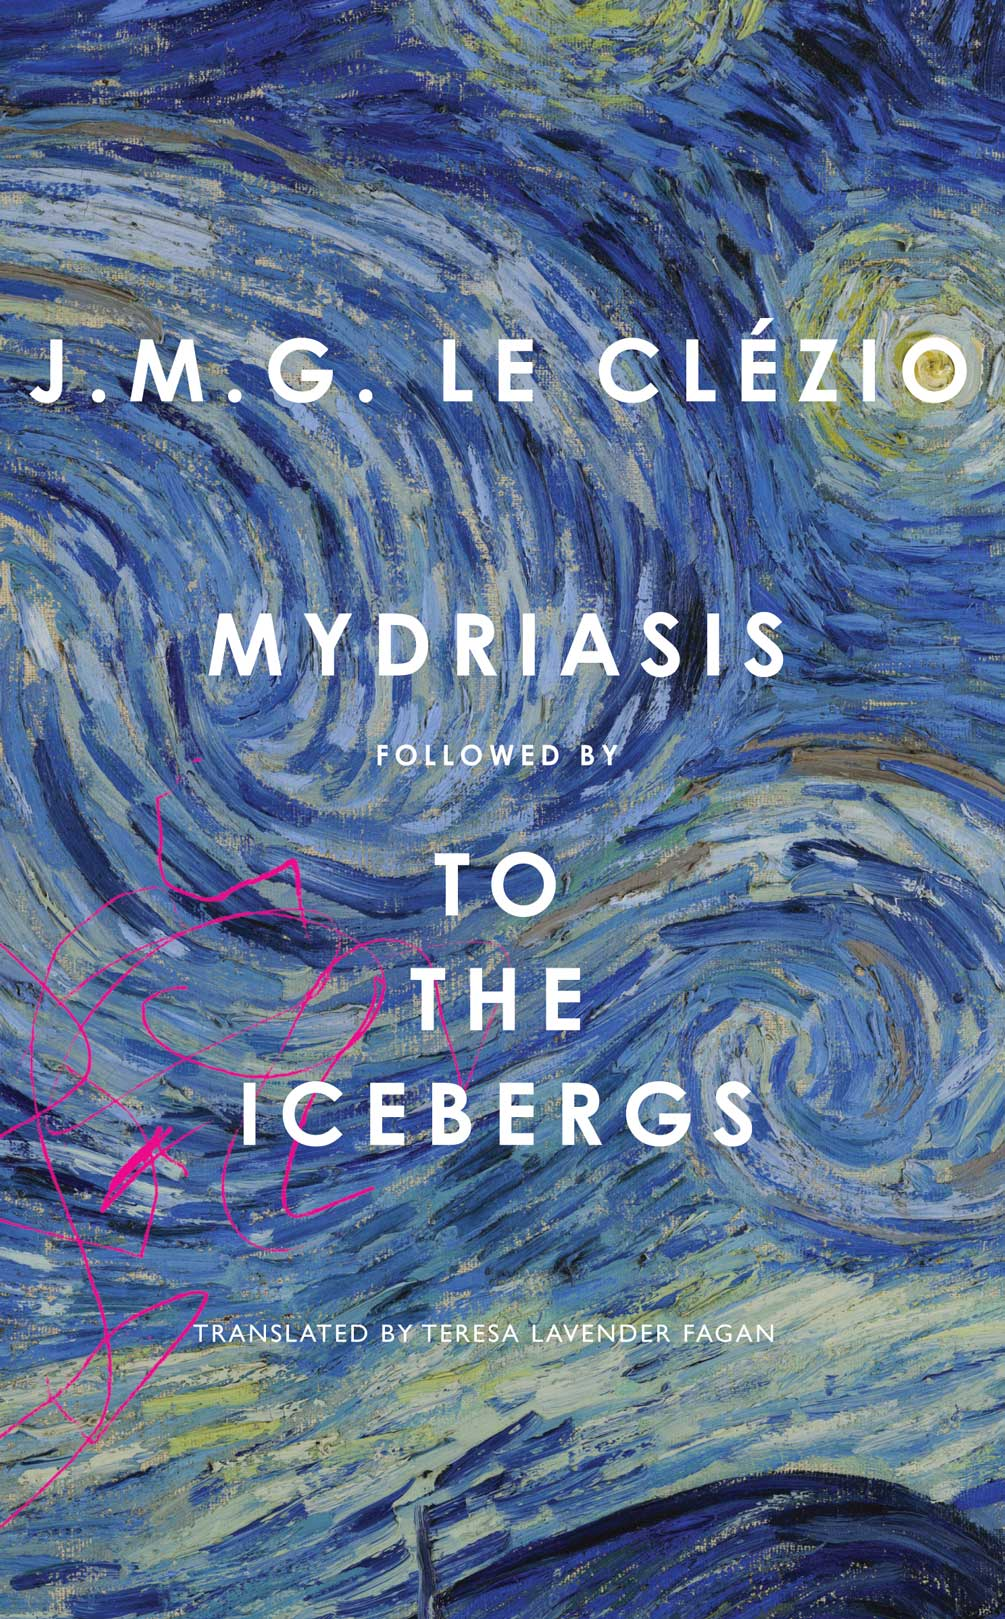 "Mydriasis: followed by ""To the Icebergs"" by J. M. G. Le Clézio  